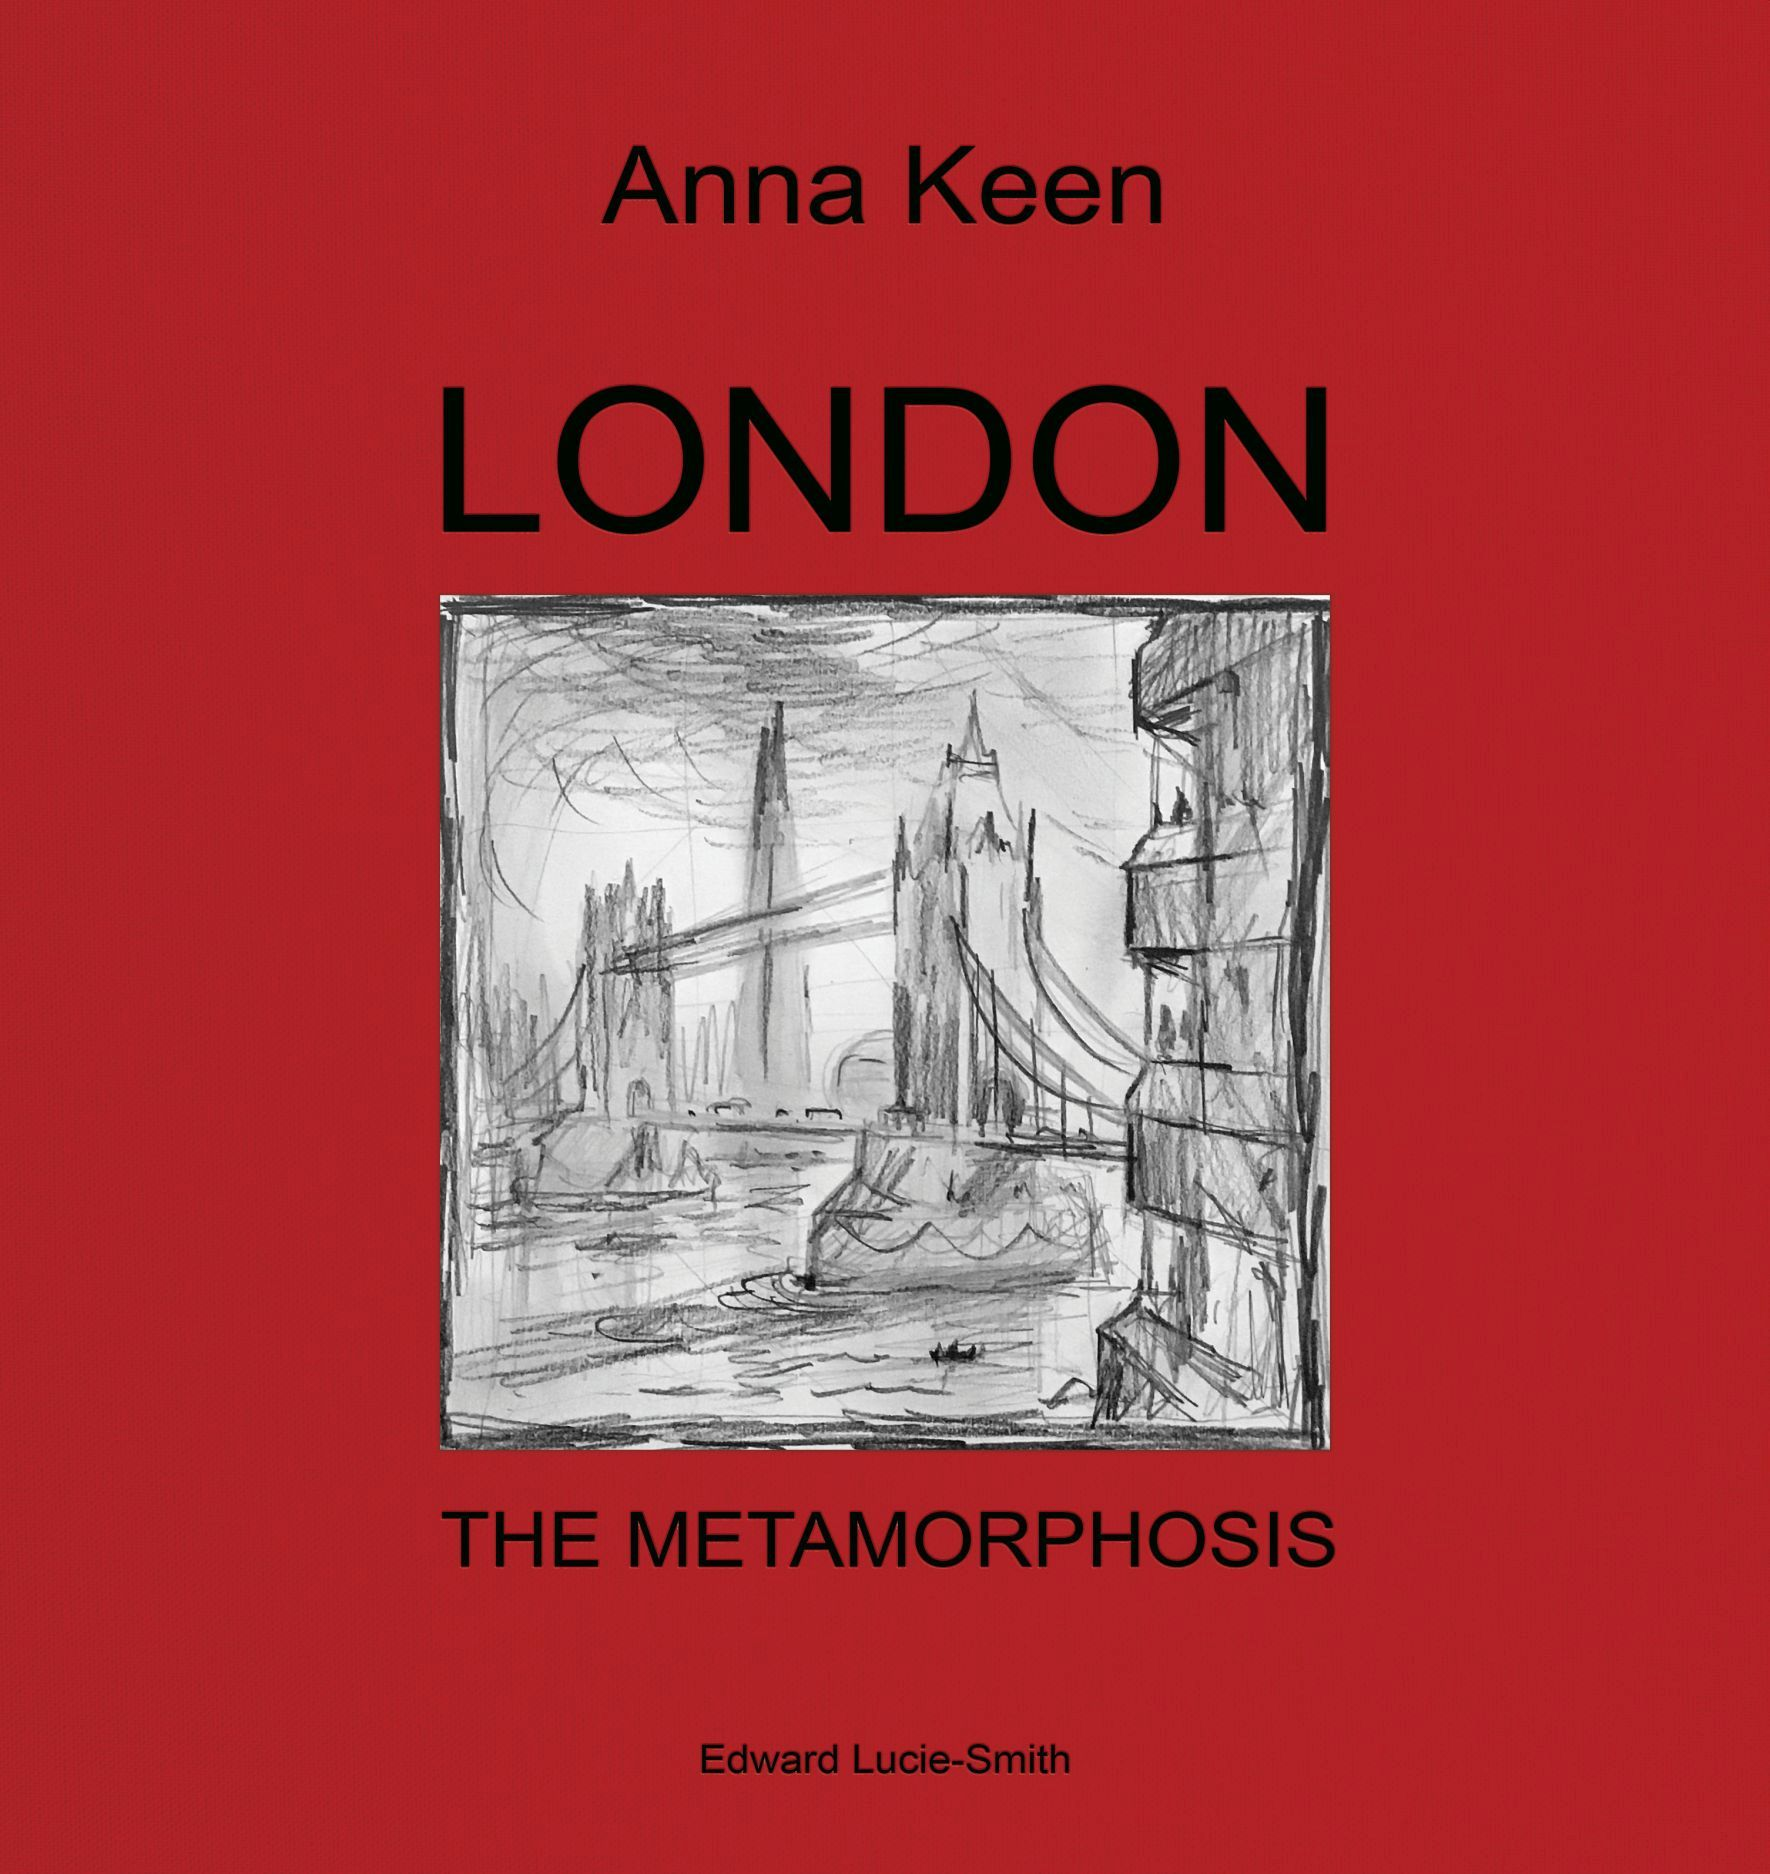 London: The Metamorphosis